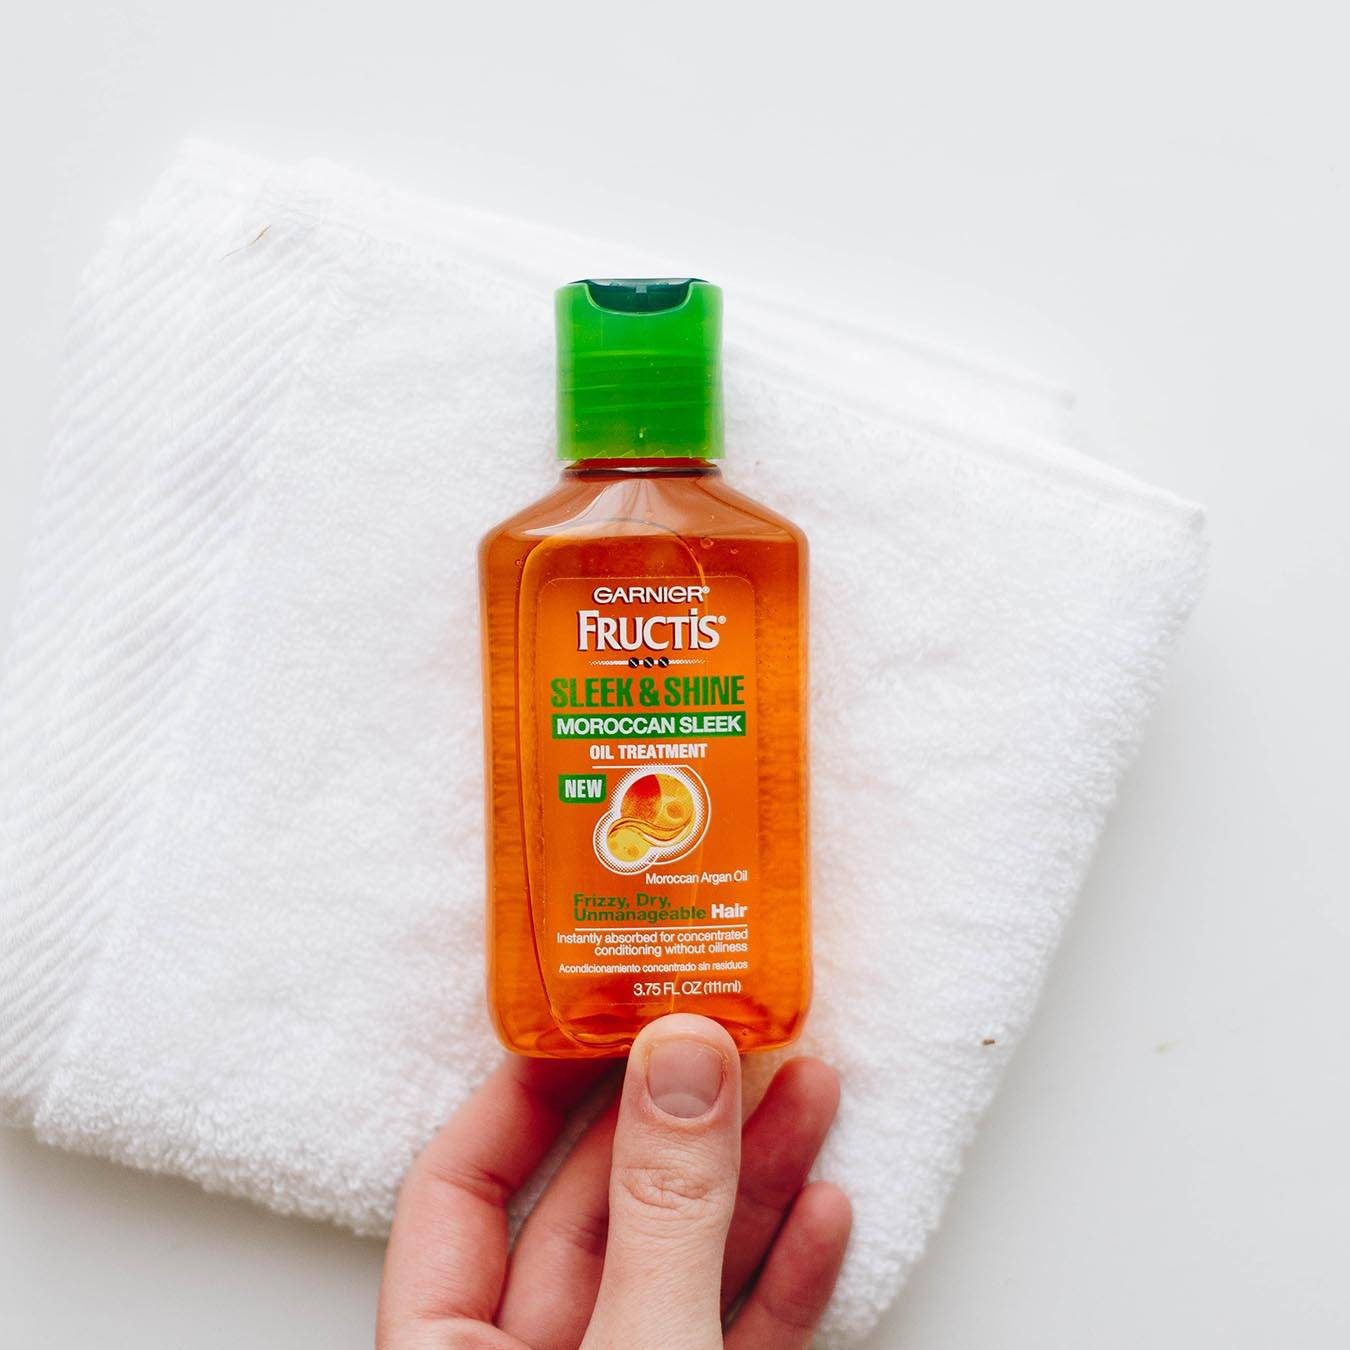 Garnier Fructis Sleek & Shine Moroccan Sleek Oil Treatment being held above a folded white hand towel on a white background.